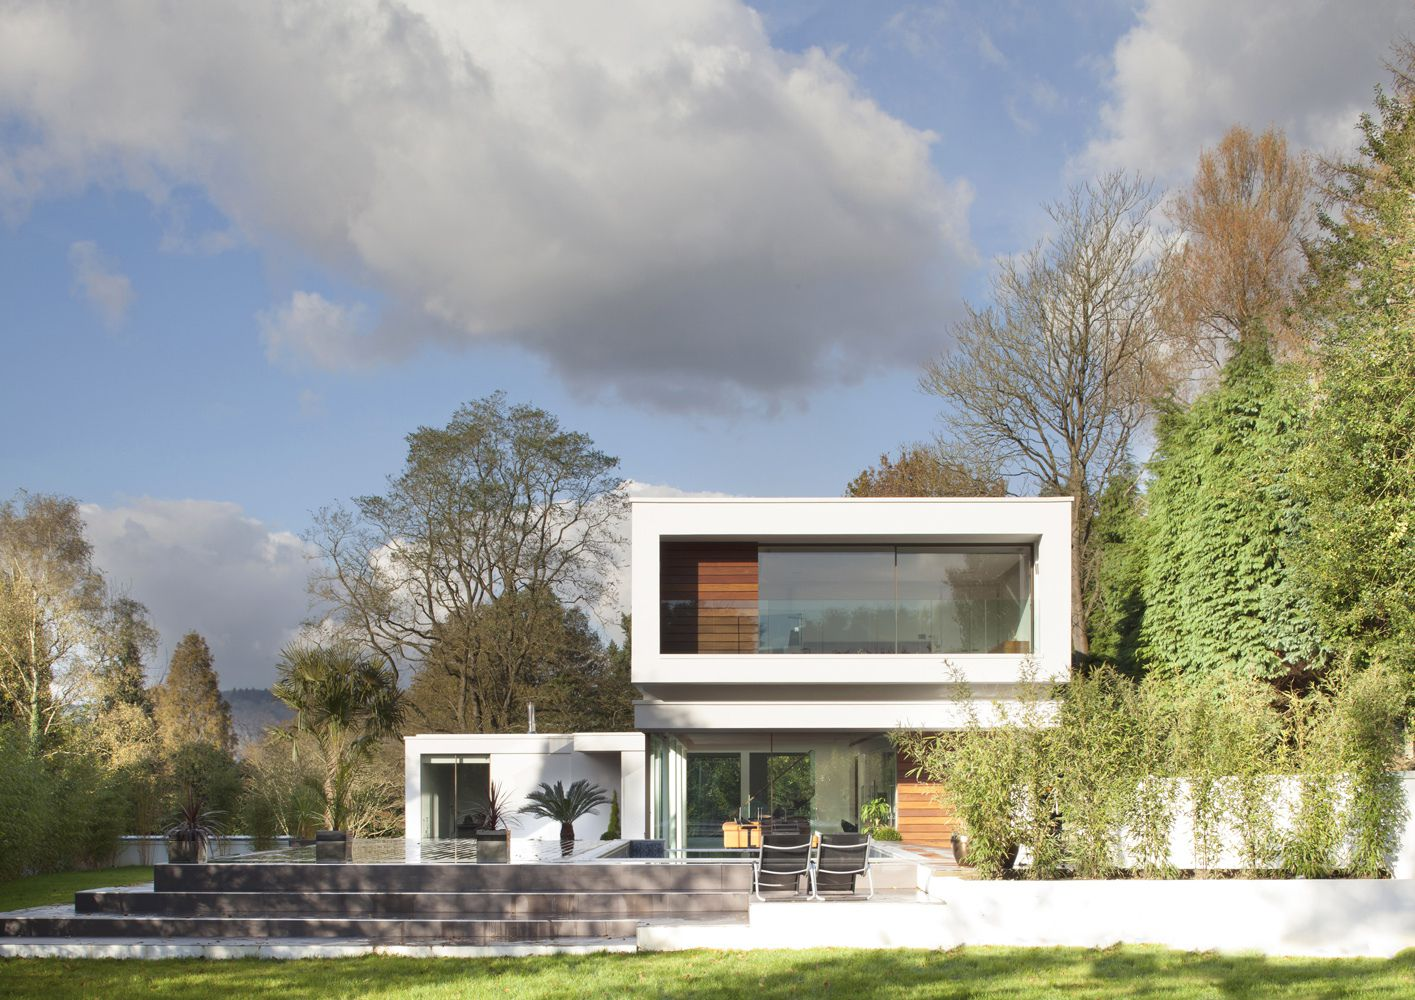 51b9e6f0b3fc4b430e000007_white-lodge-dyergrimes-architects_wl02logan